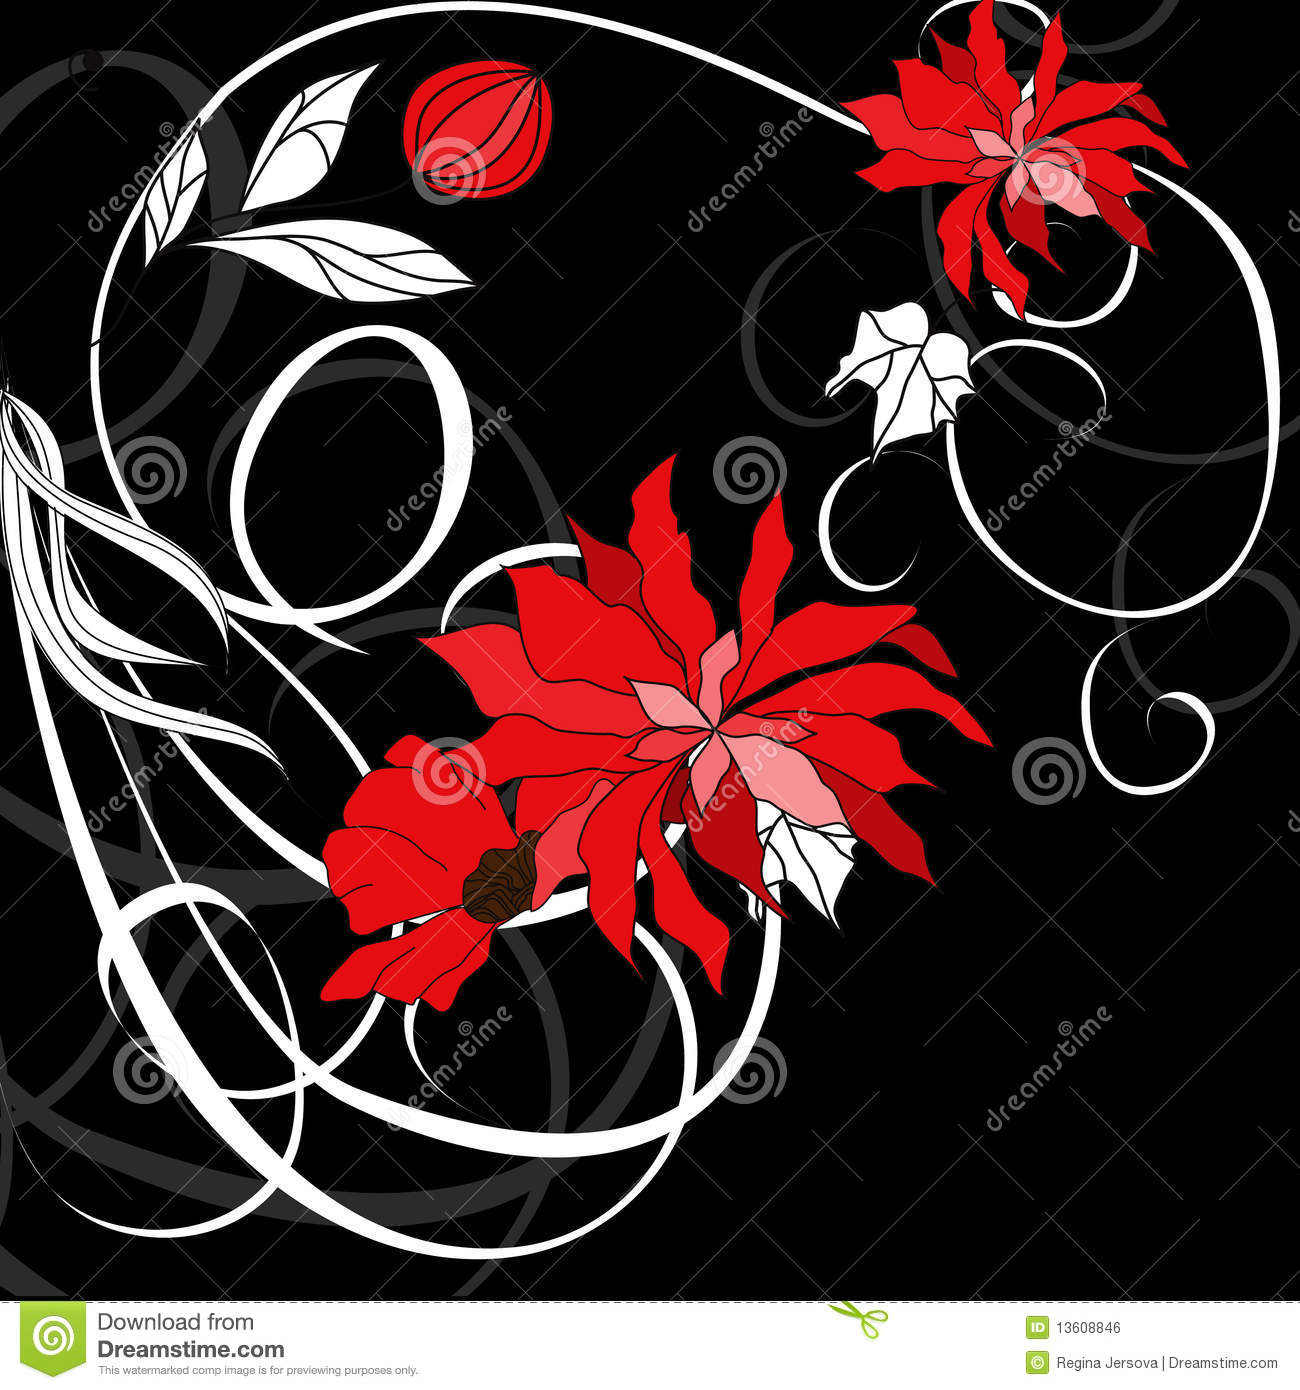 Red Flowers On Black Background Stock Vector ...